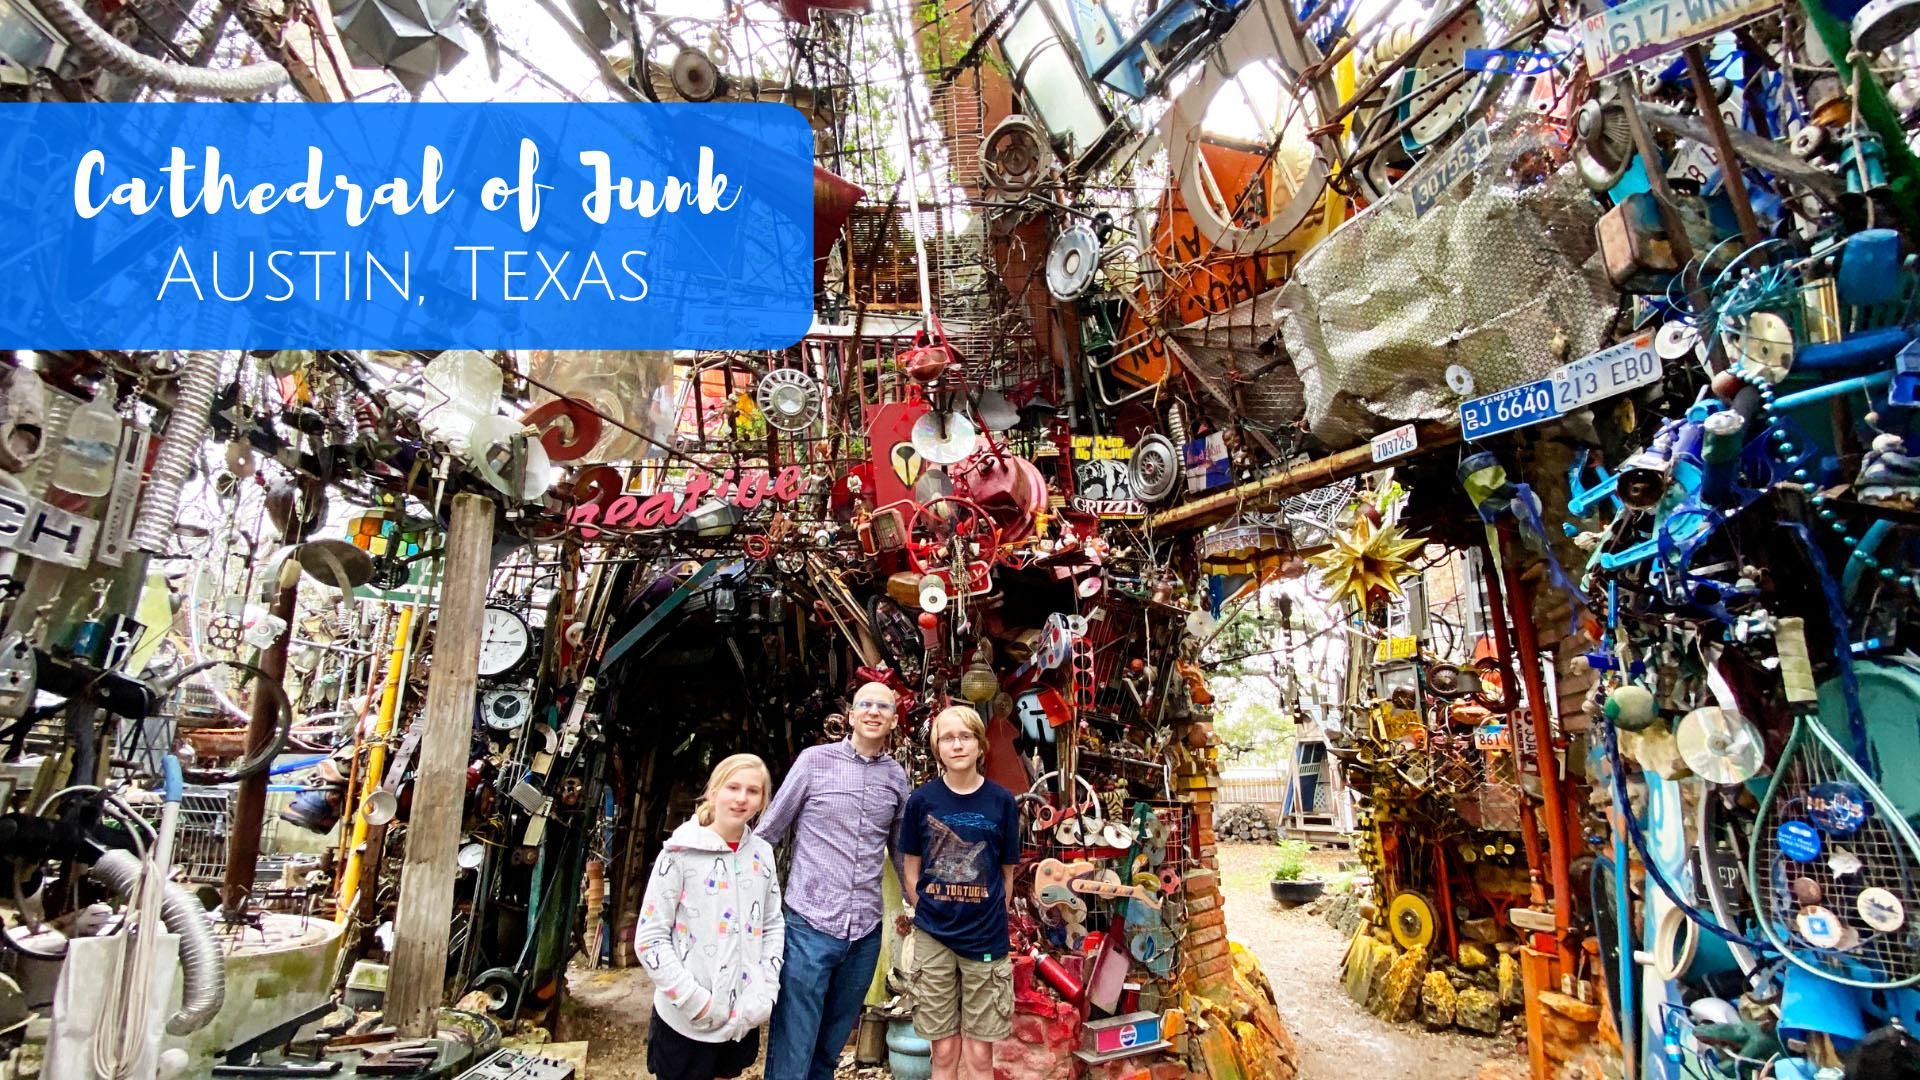 Visiting the Cathedral of Junk in Austin, Texas